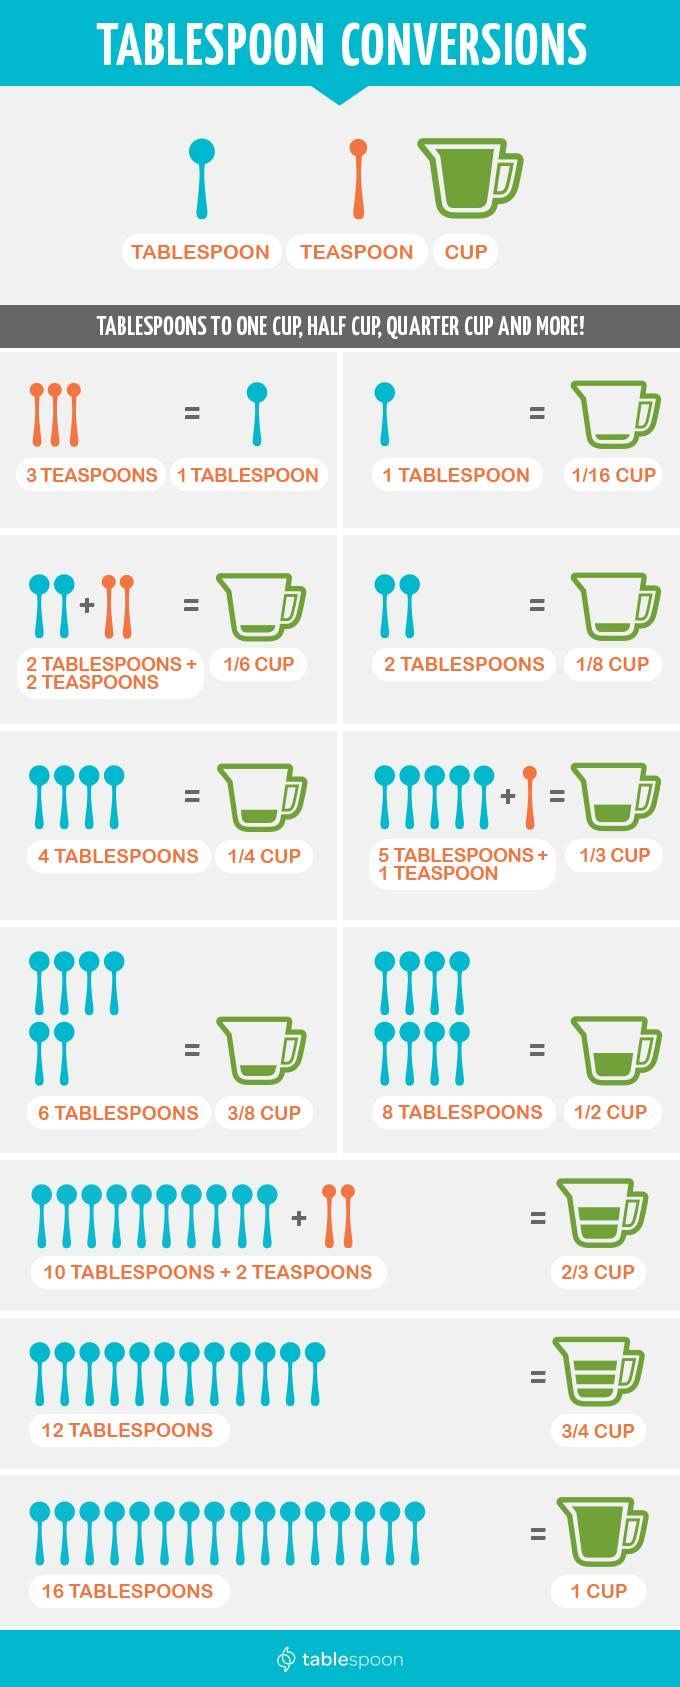 Measurement conversions tablespoon teaspoon and cups wet dry ingredients cooking tips basics for beginners baking also rh pinterest